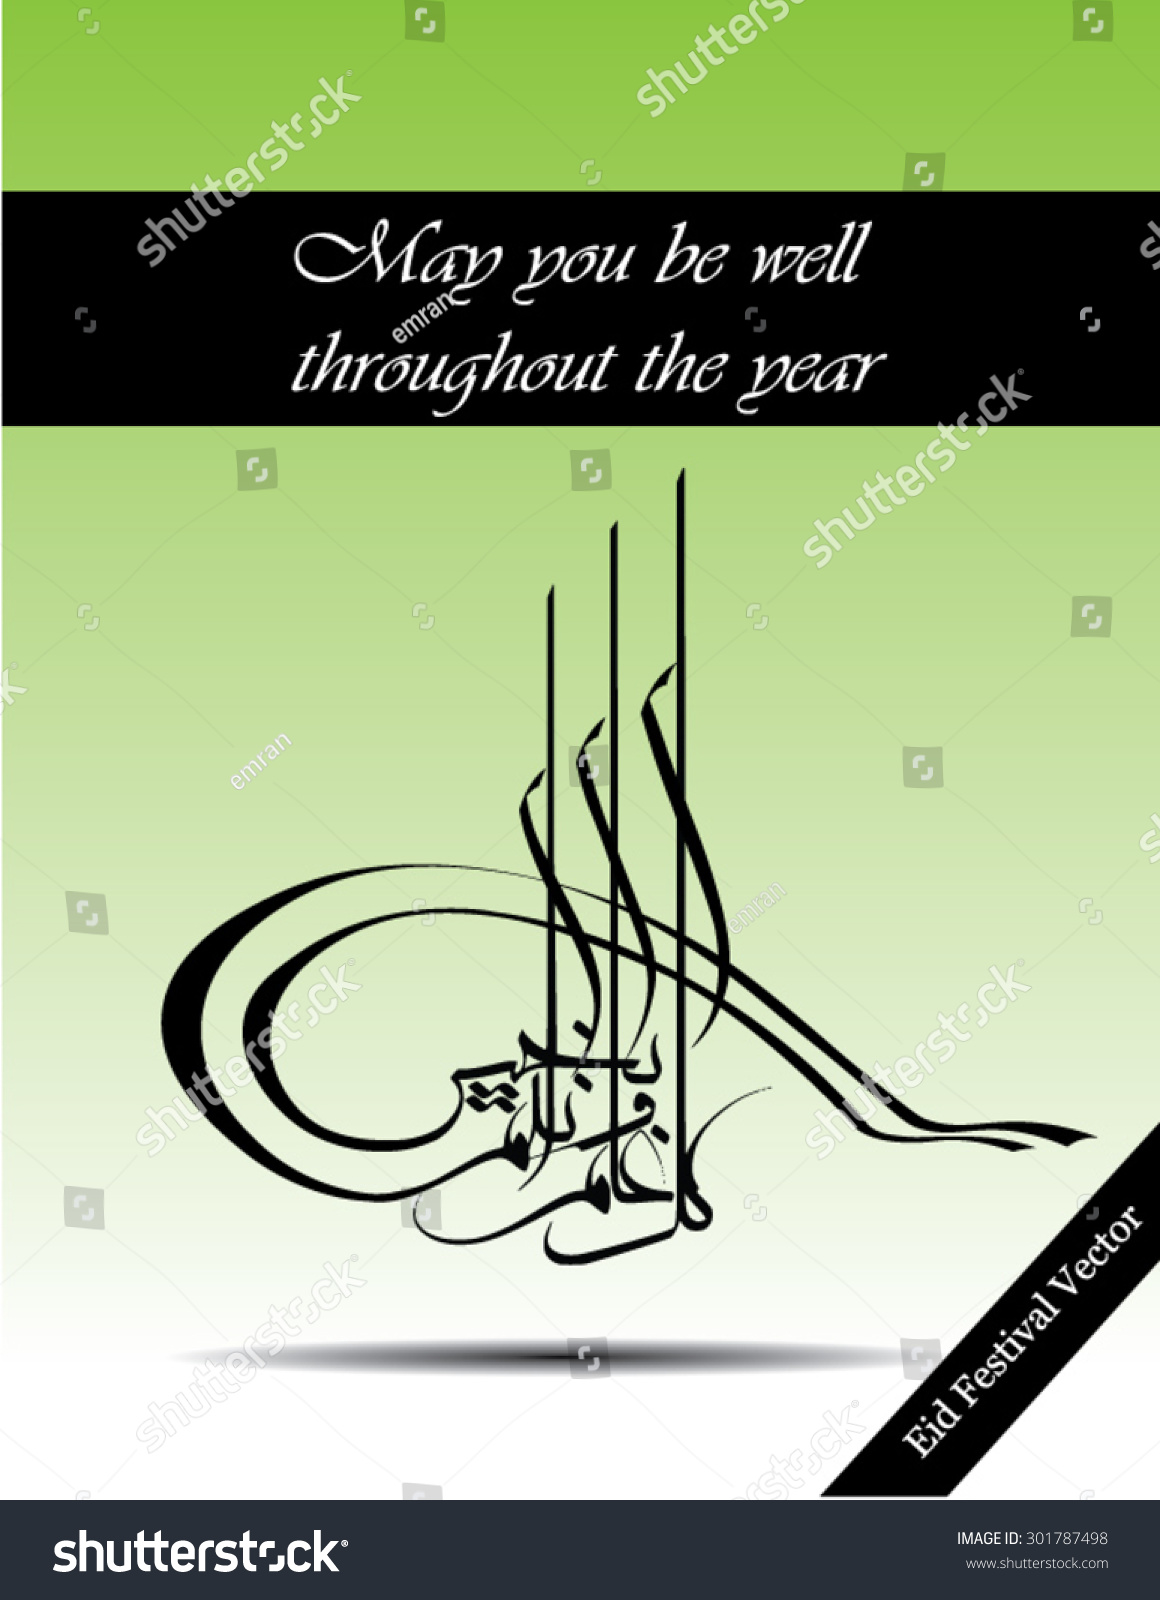 Eid greeting vector royal seal tughra stock vector 301787498 eid greeting vector in royal seal tughra arabic calligraphy style translationmay you be kristyandbryce Choice Image